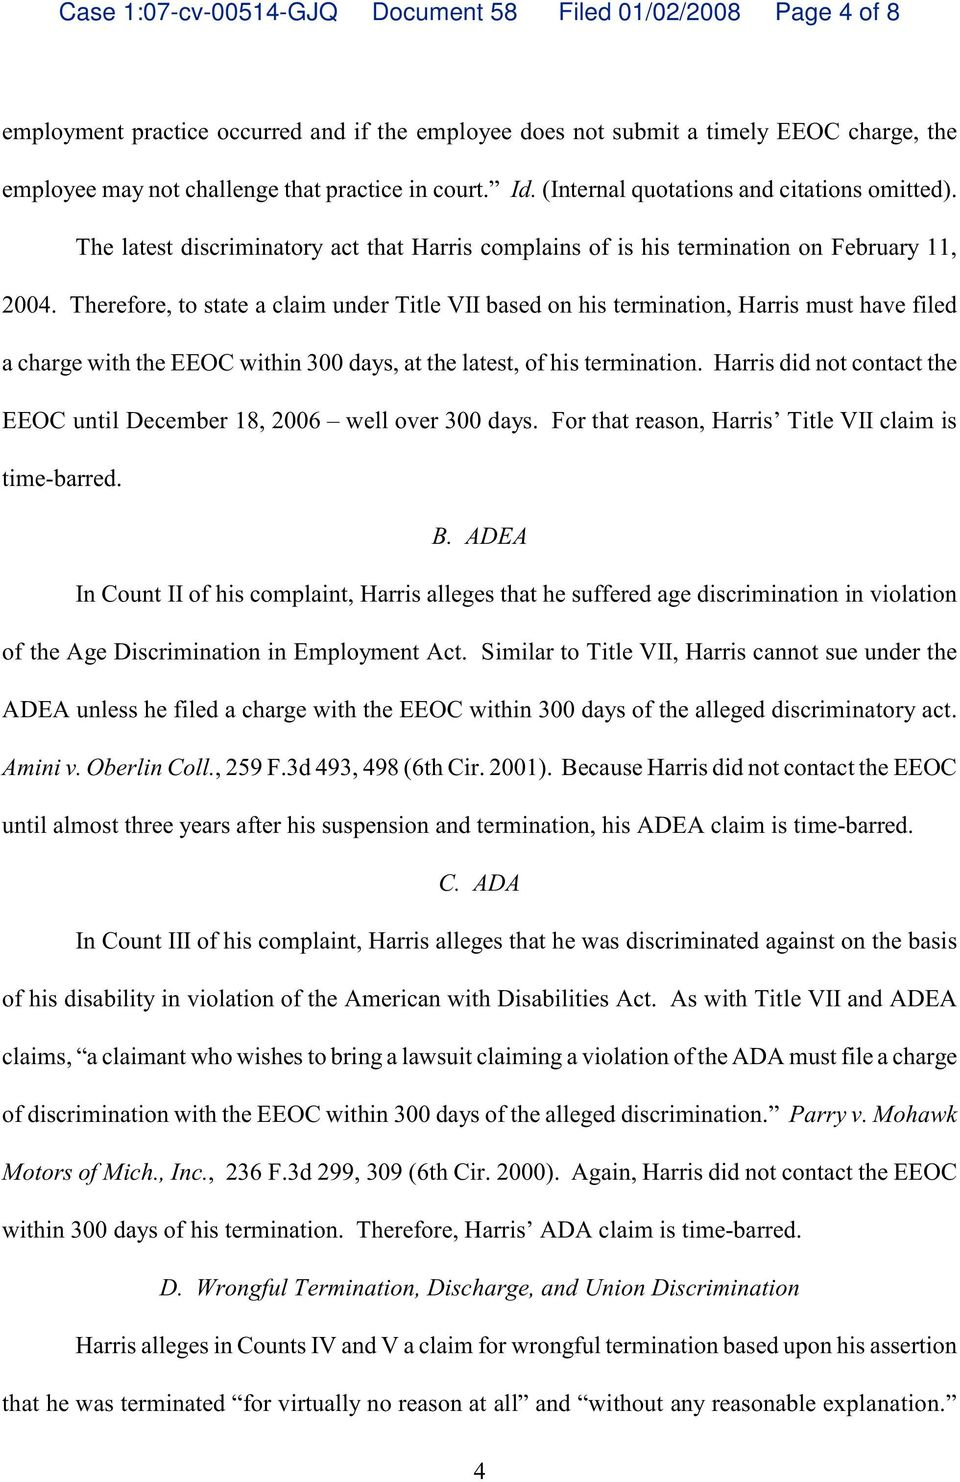 Therefore, to state a claim under Title VII based on his termination, Harris must have filed a charge with the EEOC within 300 days, at the latest, of his termination.